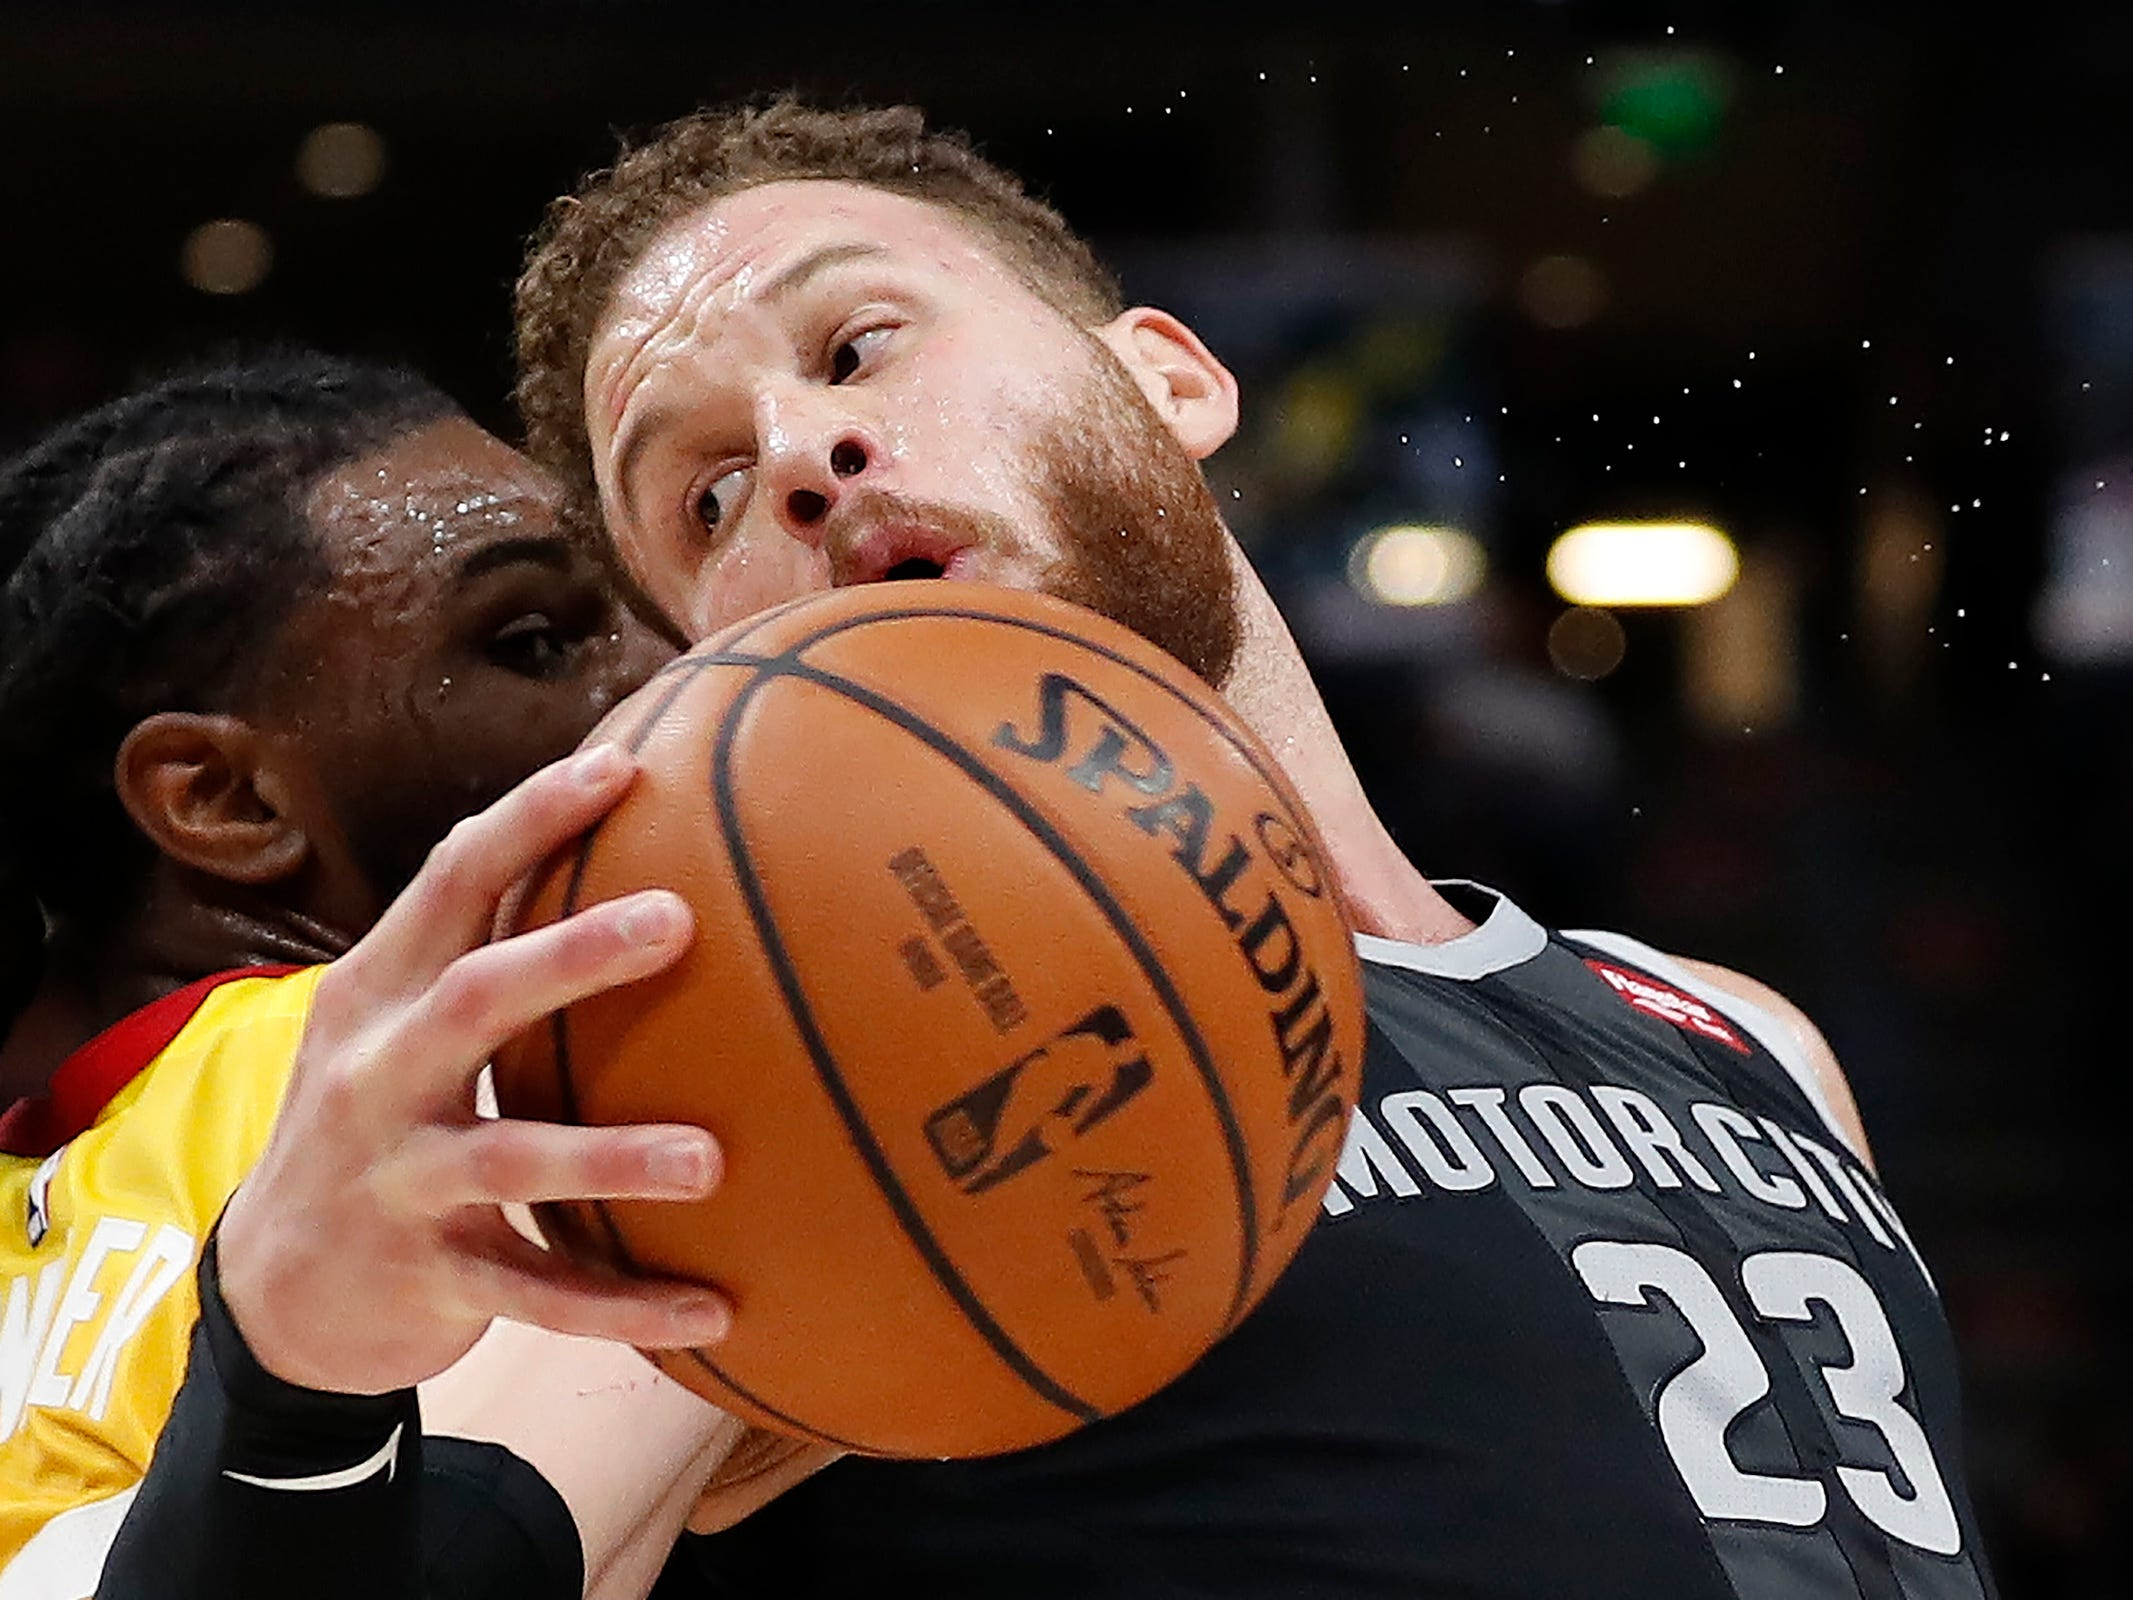 Pistons forward Blake Griffin looks to put a move on Jazz forward Jae Crowder during of the Pistons' 100-94 loss to the Jazz on Monday, Jan. 14, 2019, in Salt Lake City.